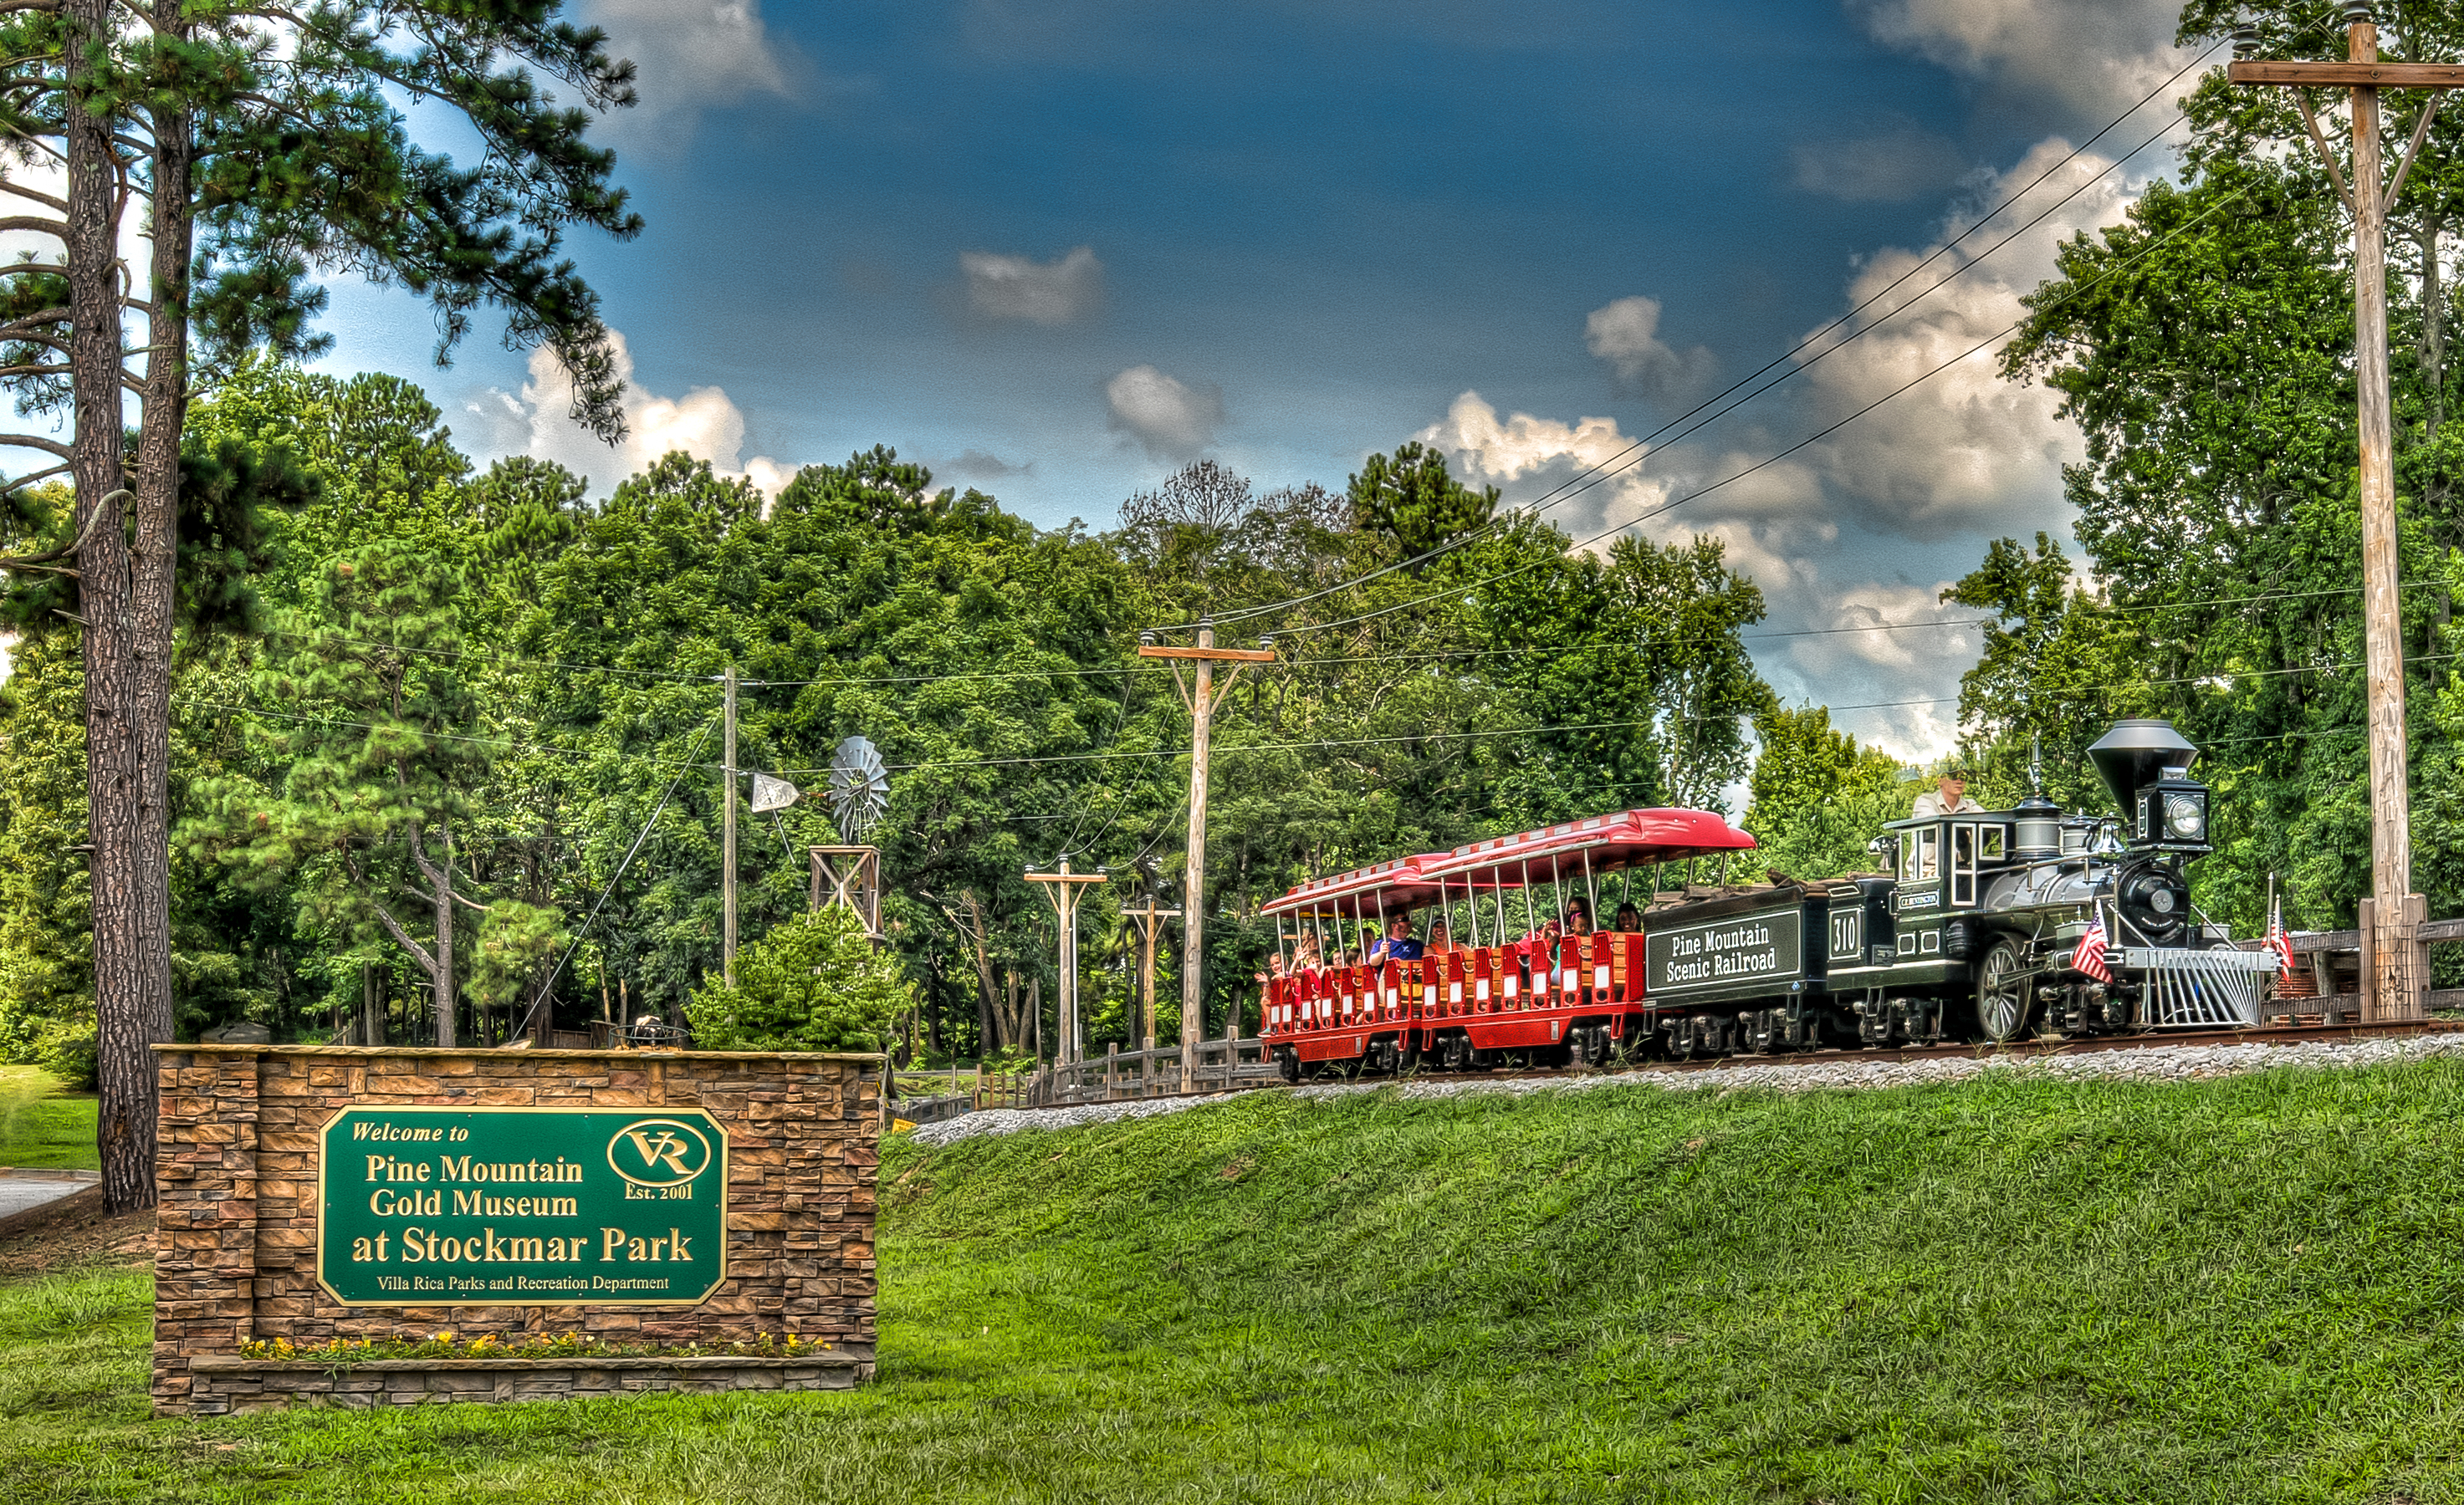 Pine Mountain Scenic Railroad